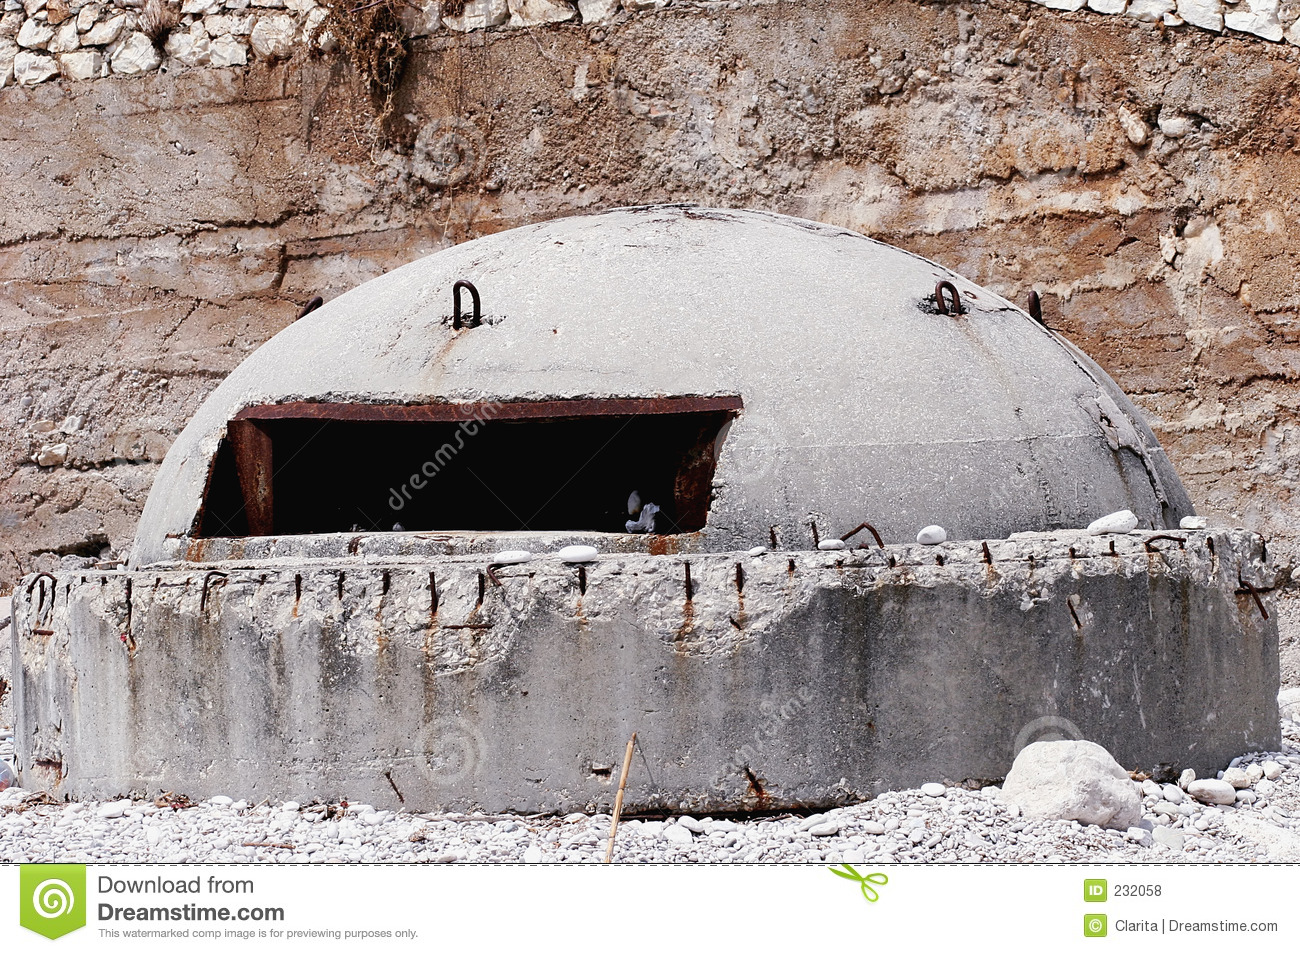 War Bunker Royalty Free Stock Photos - Image: 232058